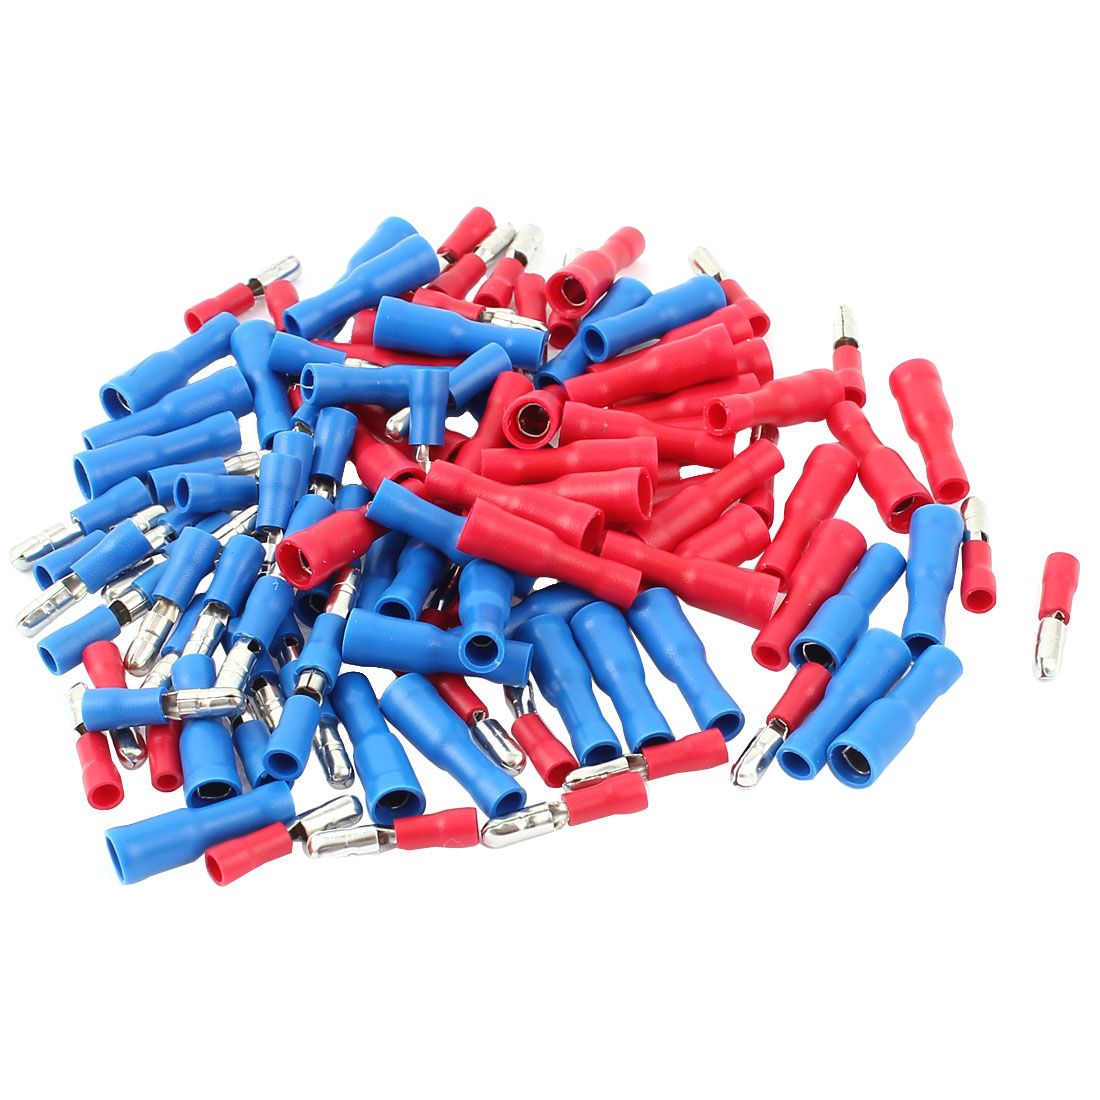 120Pcs 16-14 AWG Insulated Connector Male to Female Crimp Terminals MPD2-156